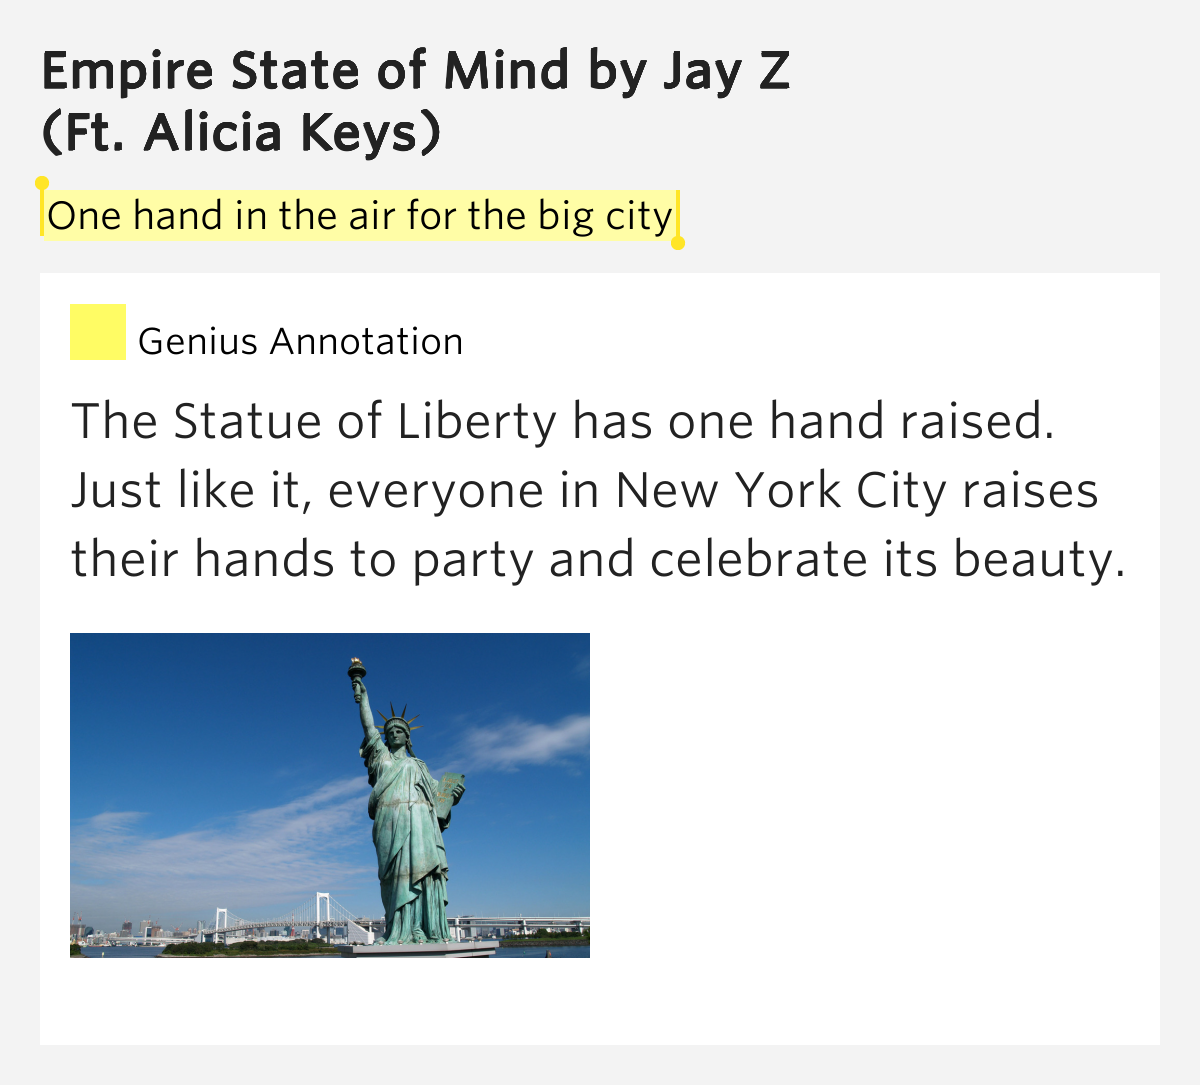 Empire State Of Mind Pt 2 Alicia Keys: One Hand In The Air For The Big City